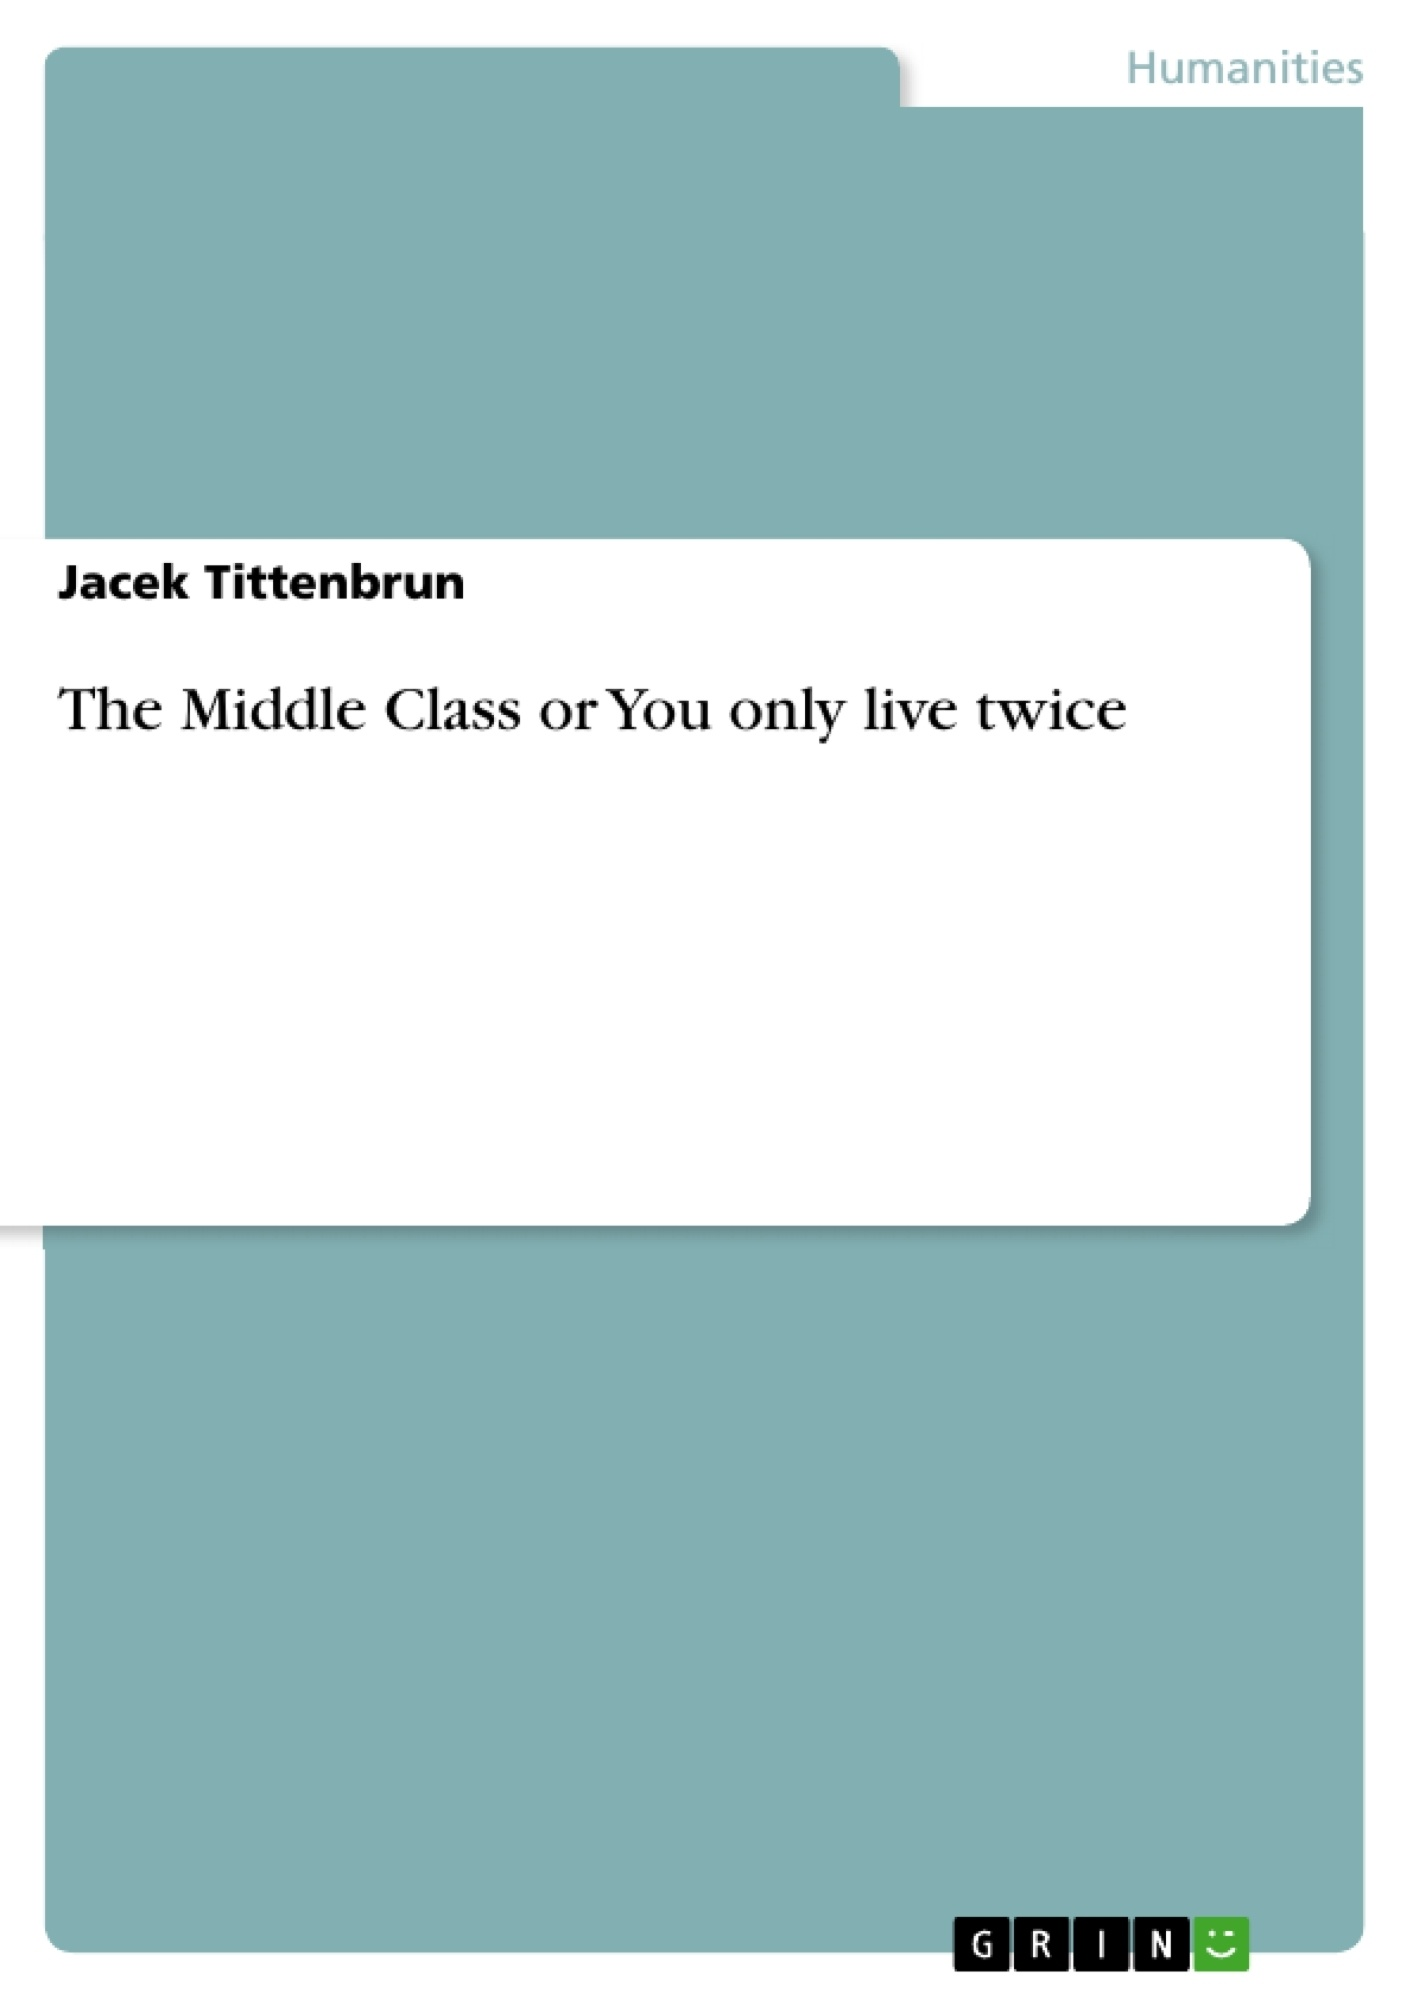 The Middle Class Or You Only Live Twice Publish Your Master's